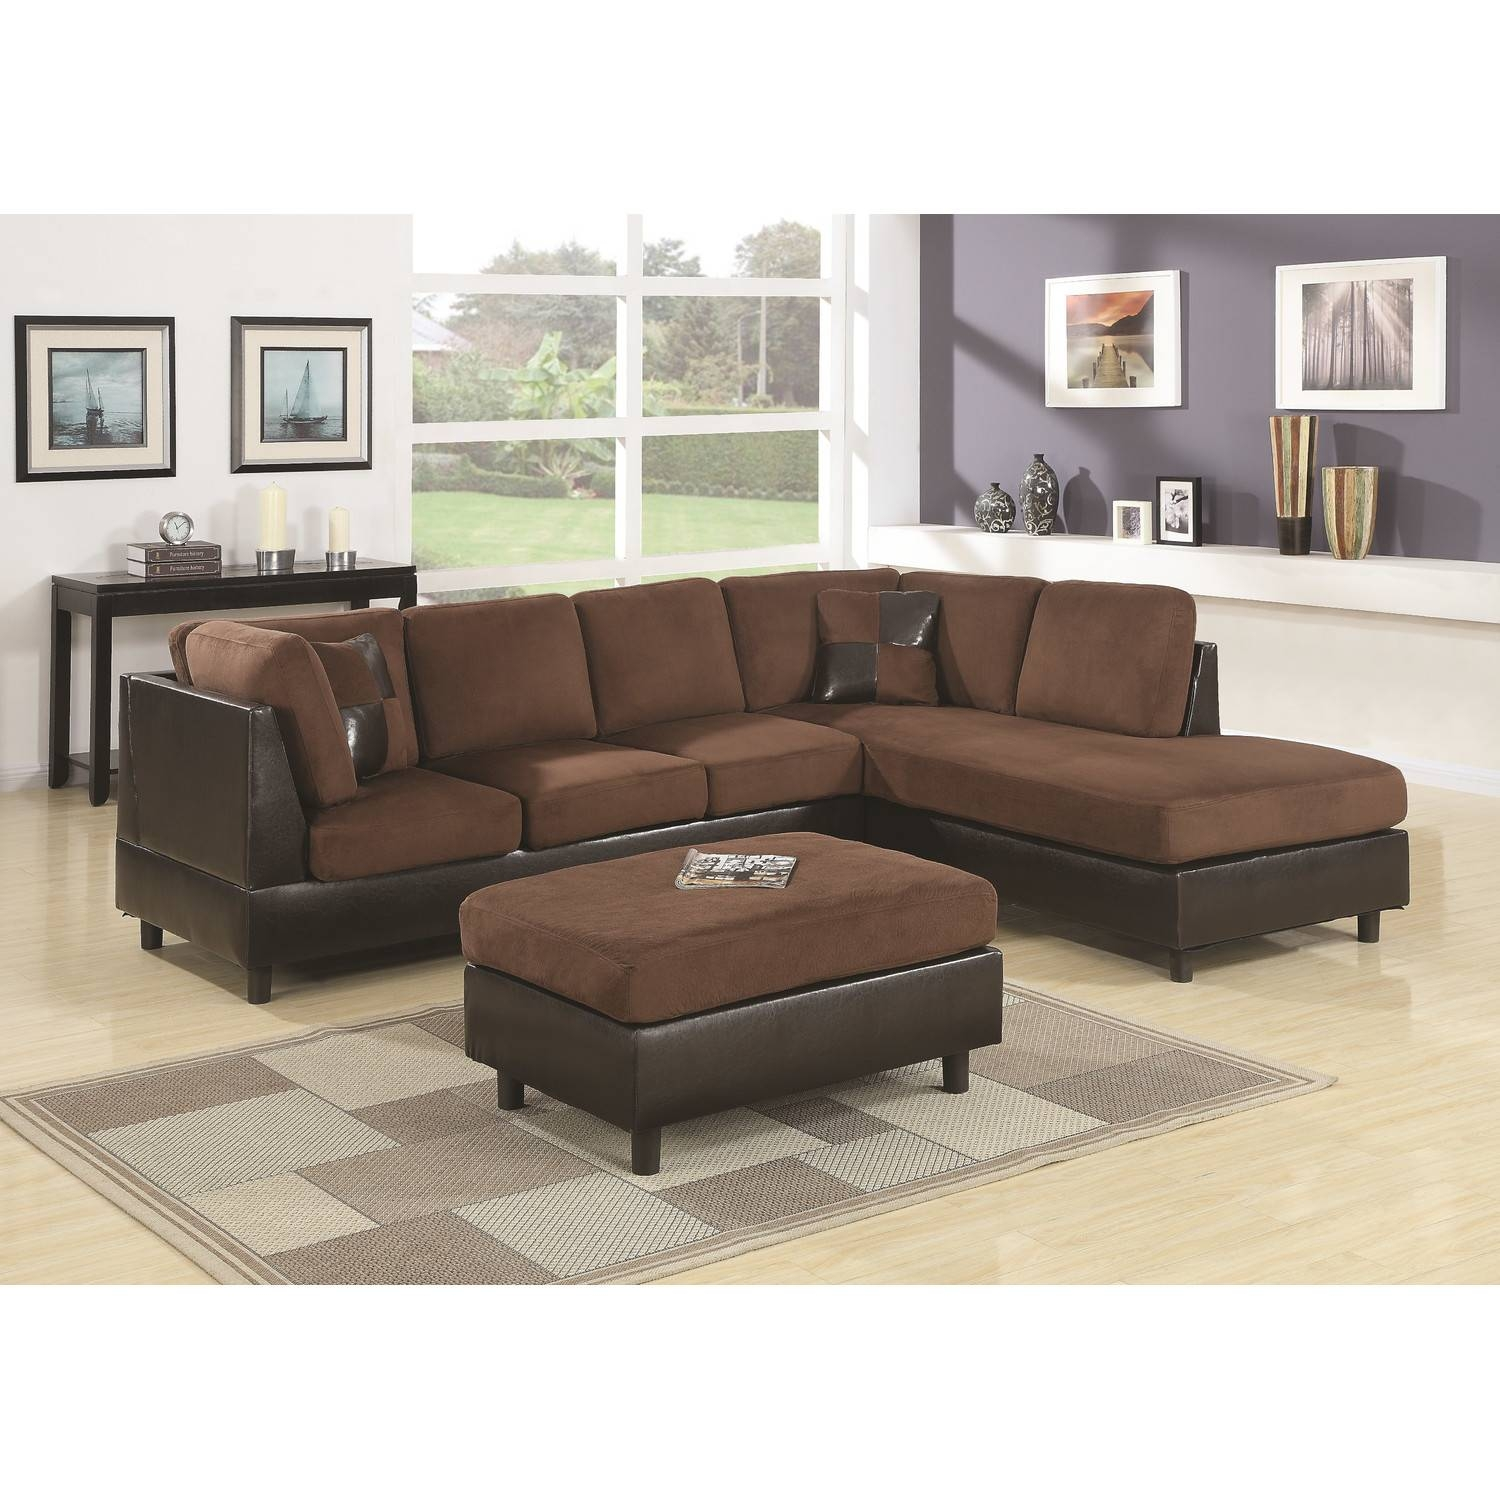 Furniture: Beautiful Sectional Sofas Cheap For Living Room for Black Sectional Sofa for Cheap (Image 5 of 30)